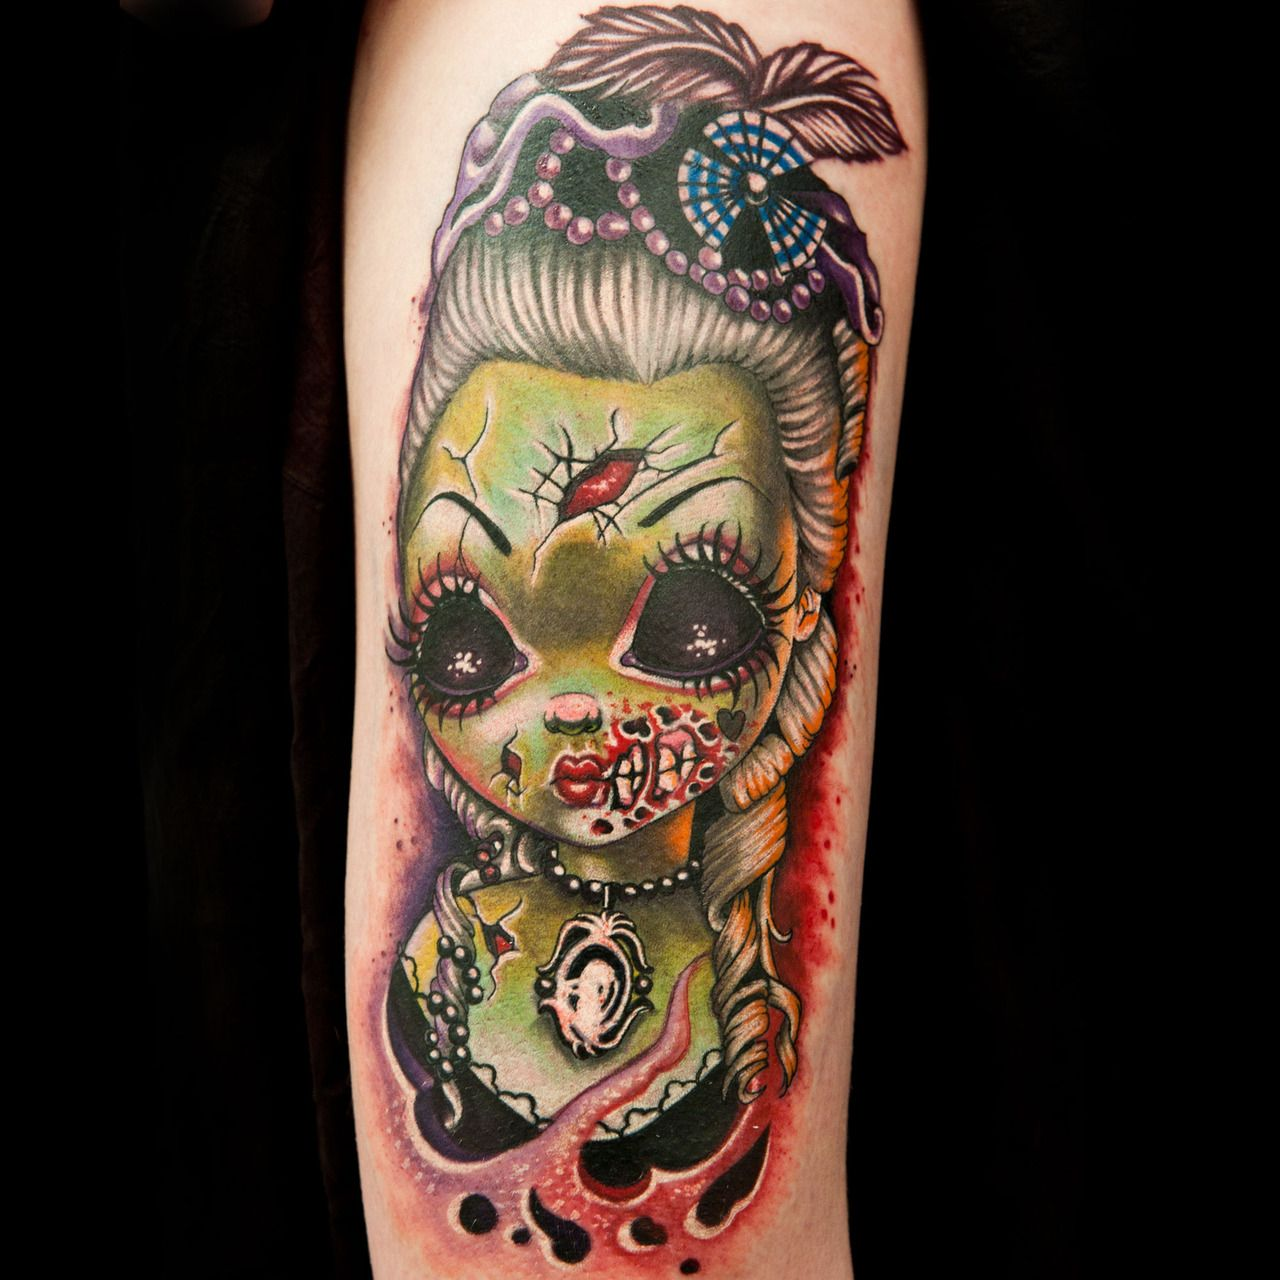 Pin By Yasmine Charo On Ink Ink Master Tattoos Zombie Tattoos